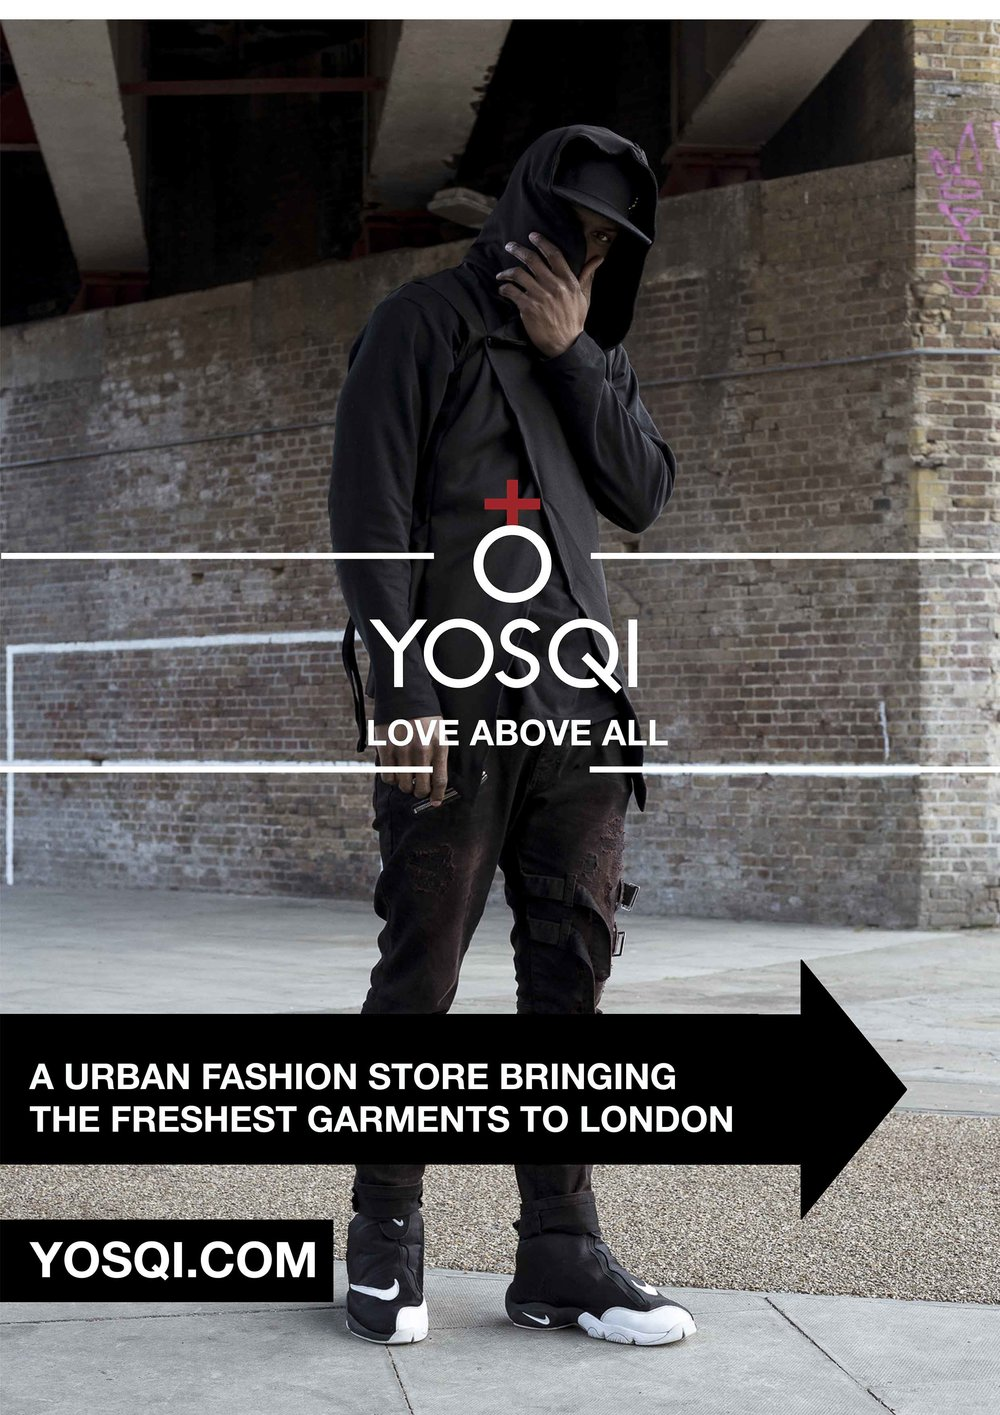 Yosqi - A0 Sandwich Boards (2/3)   Yosqi is a high-end urban fashion store located in the heart of Camden Stable Market. A0 Sandwich boards needed to be created to direct more customers to the store. These were printed and placed around the Camden area. Find out more at  www.yosqi.com   Photography by Marcelenia Sosnowska